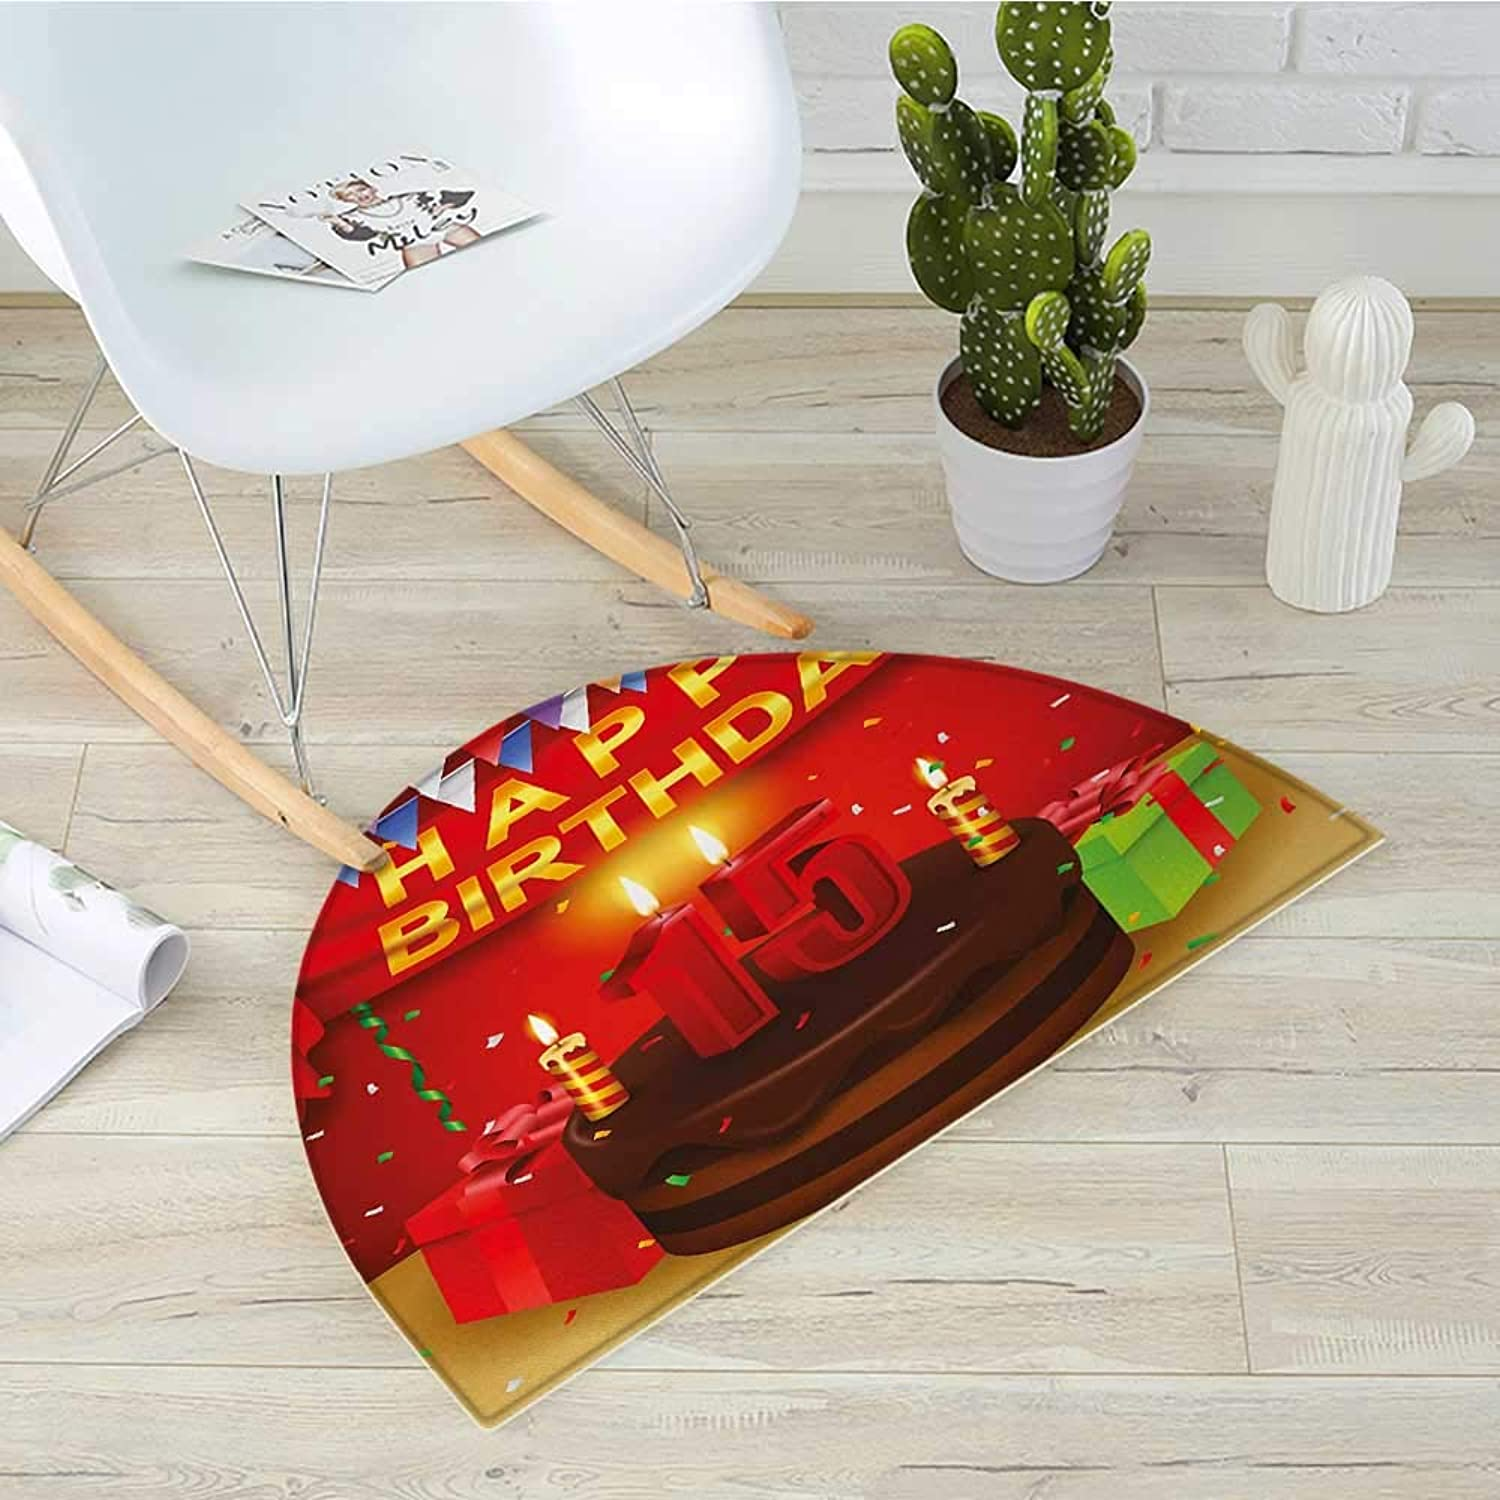 15th Birthday Semicircle Doormat Teenage Party Set Up with colorful Flags Ribbons Balloons and Creamy Cake Halfmoon doormats H 31.5  xD 47.2  Multicolor